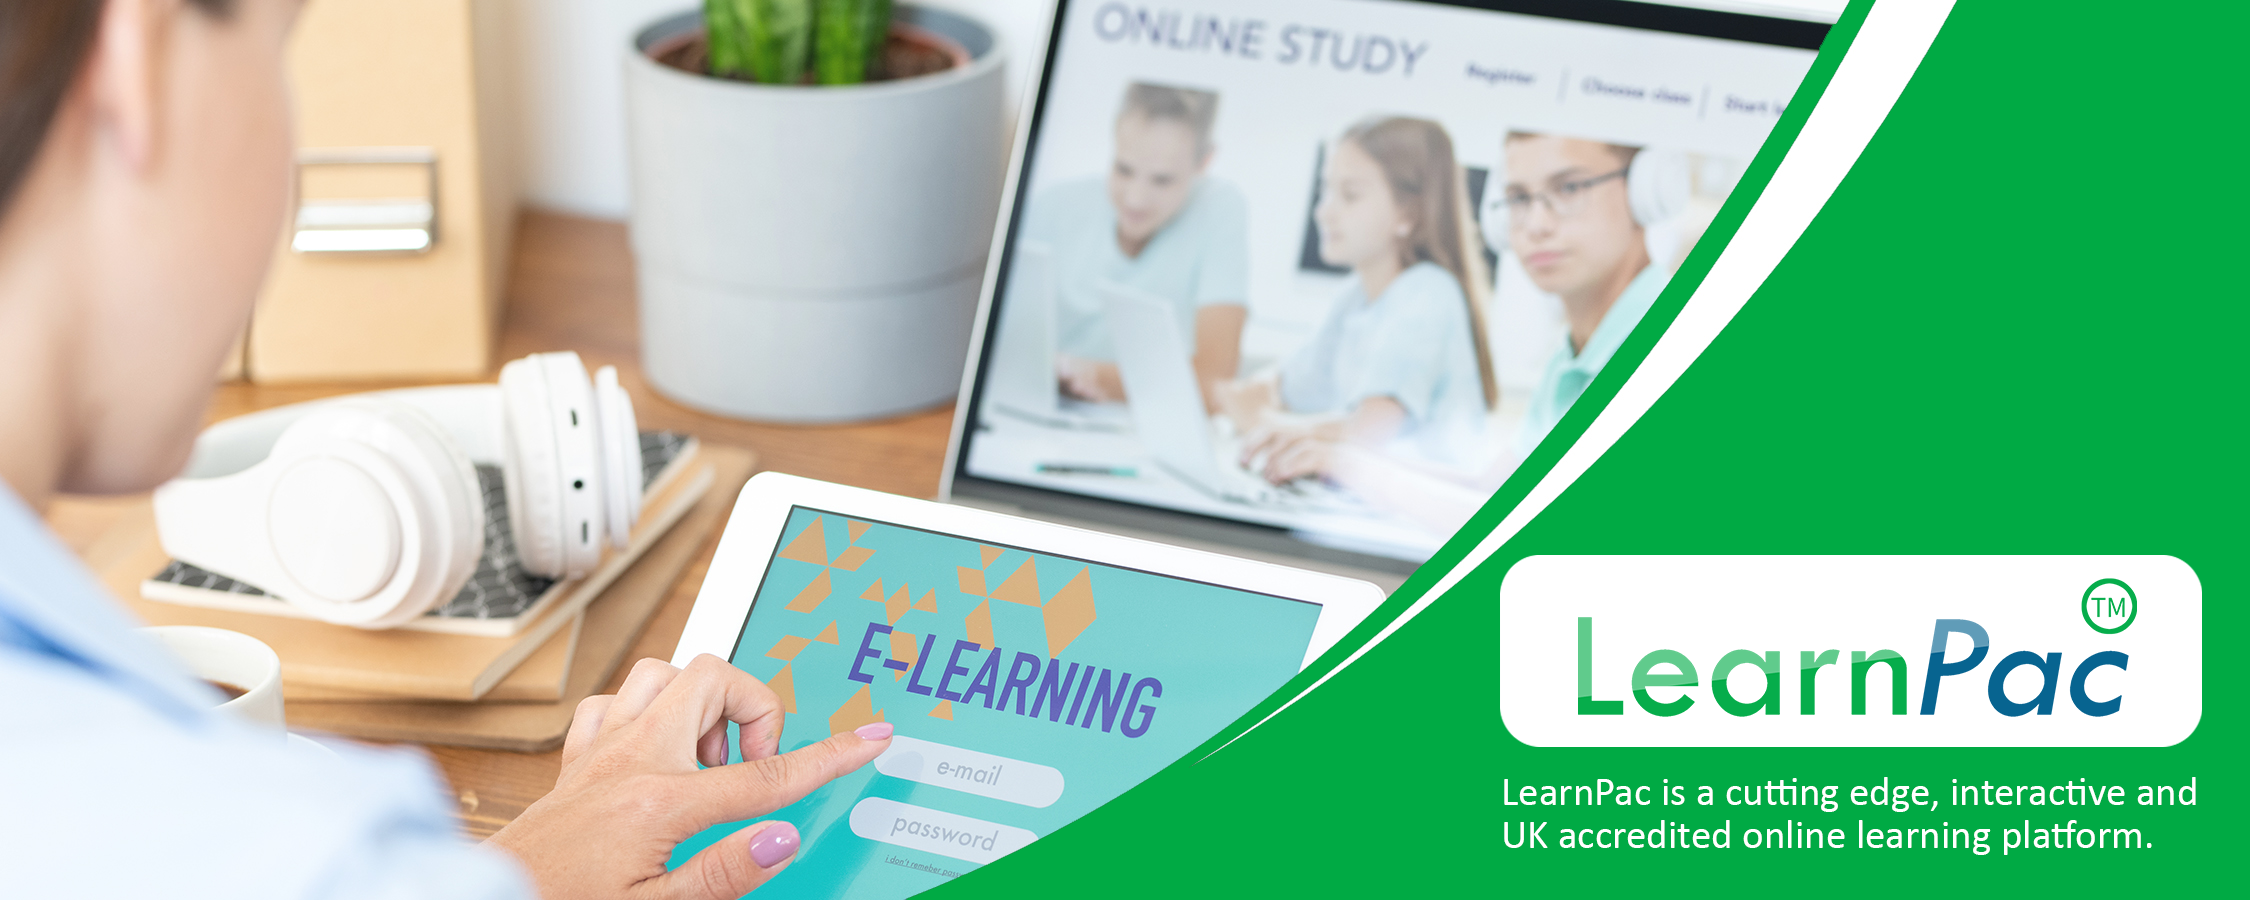 Managing Change - Online Learning Courses - E-Learning Courses - LearnPac Systems UK -